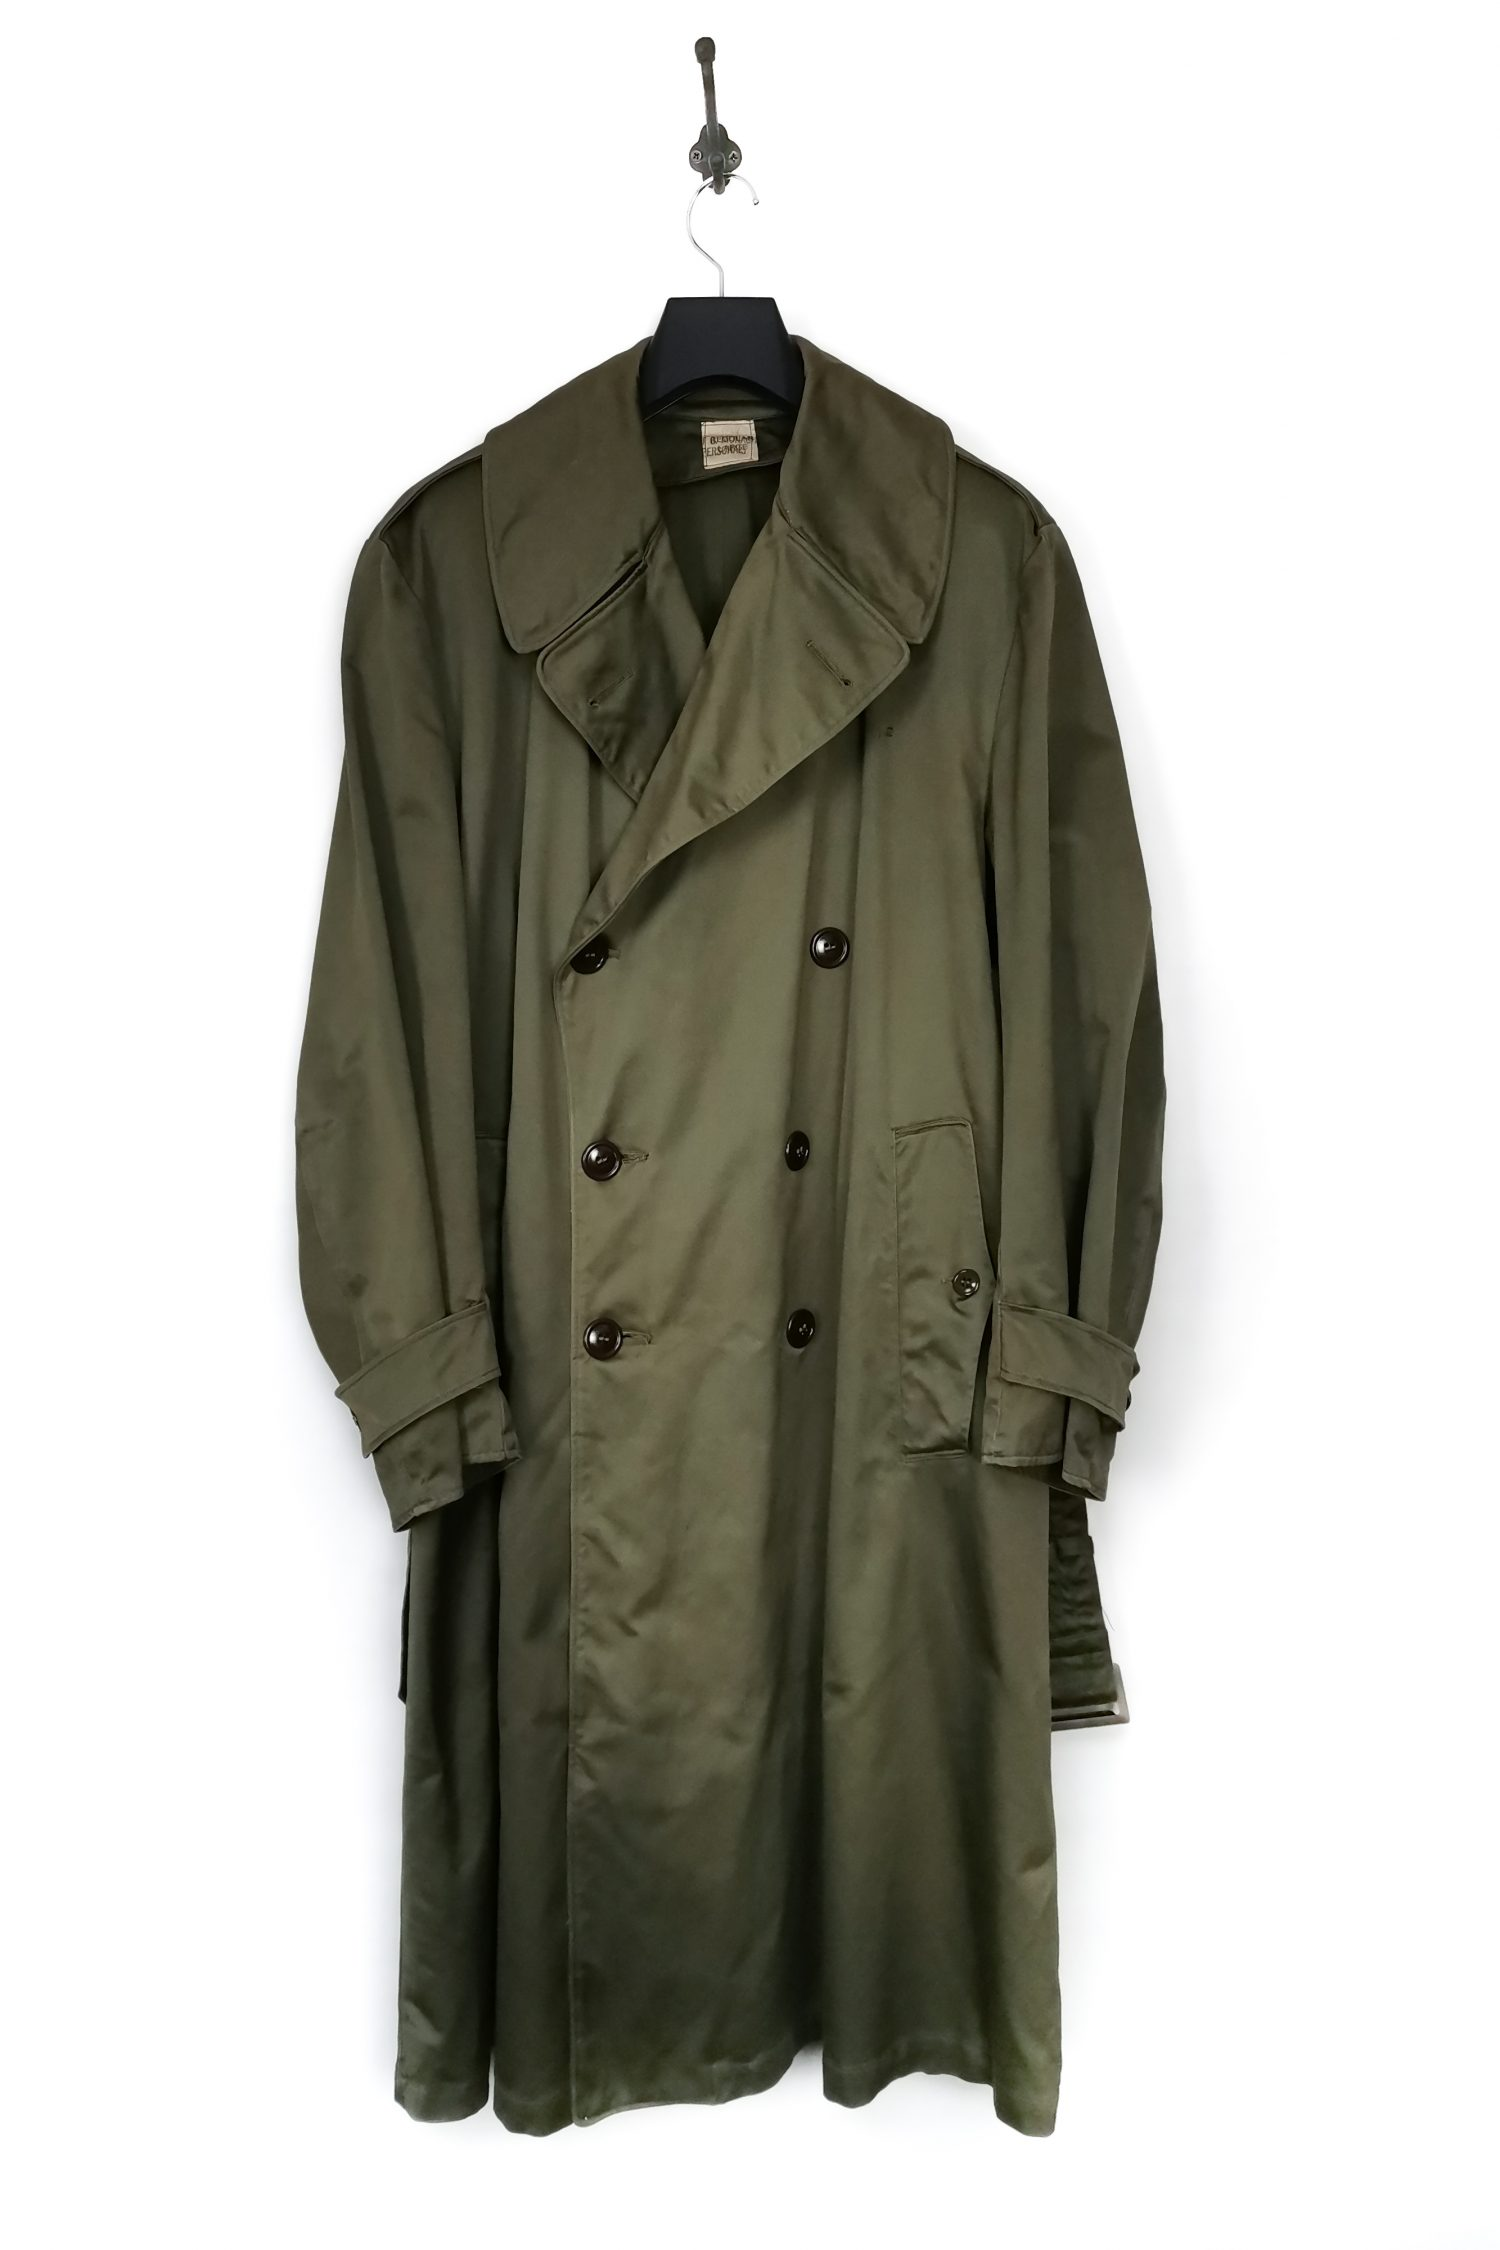 40's Vintage Military Trench Coat_REGULAR-LARGE-11